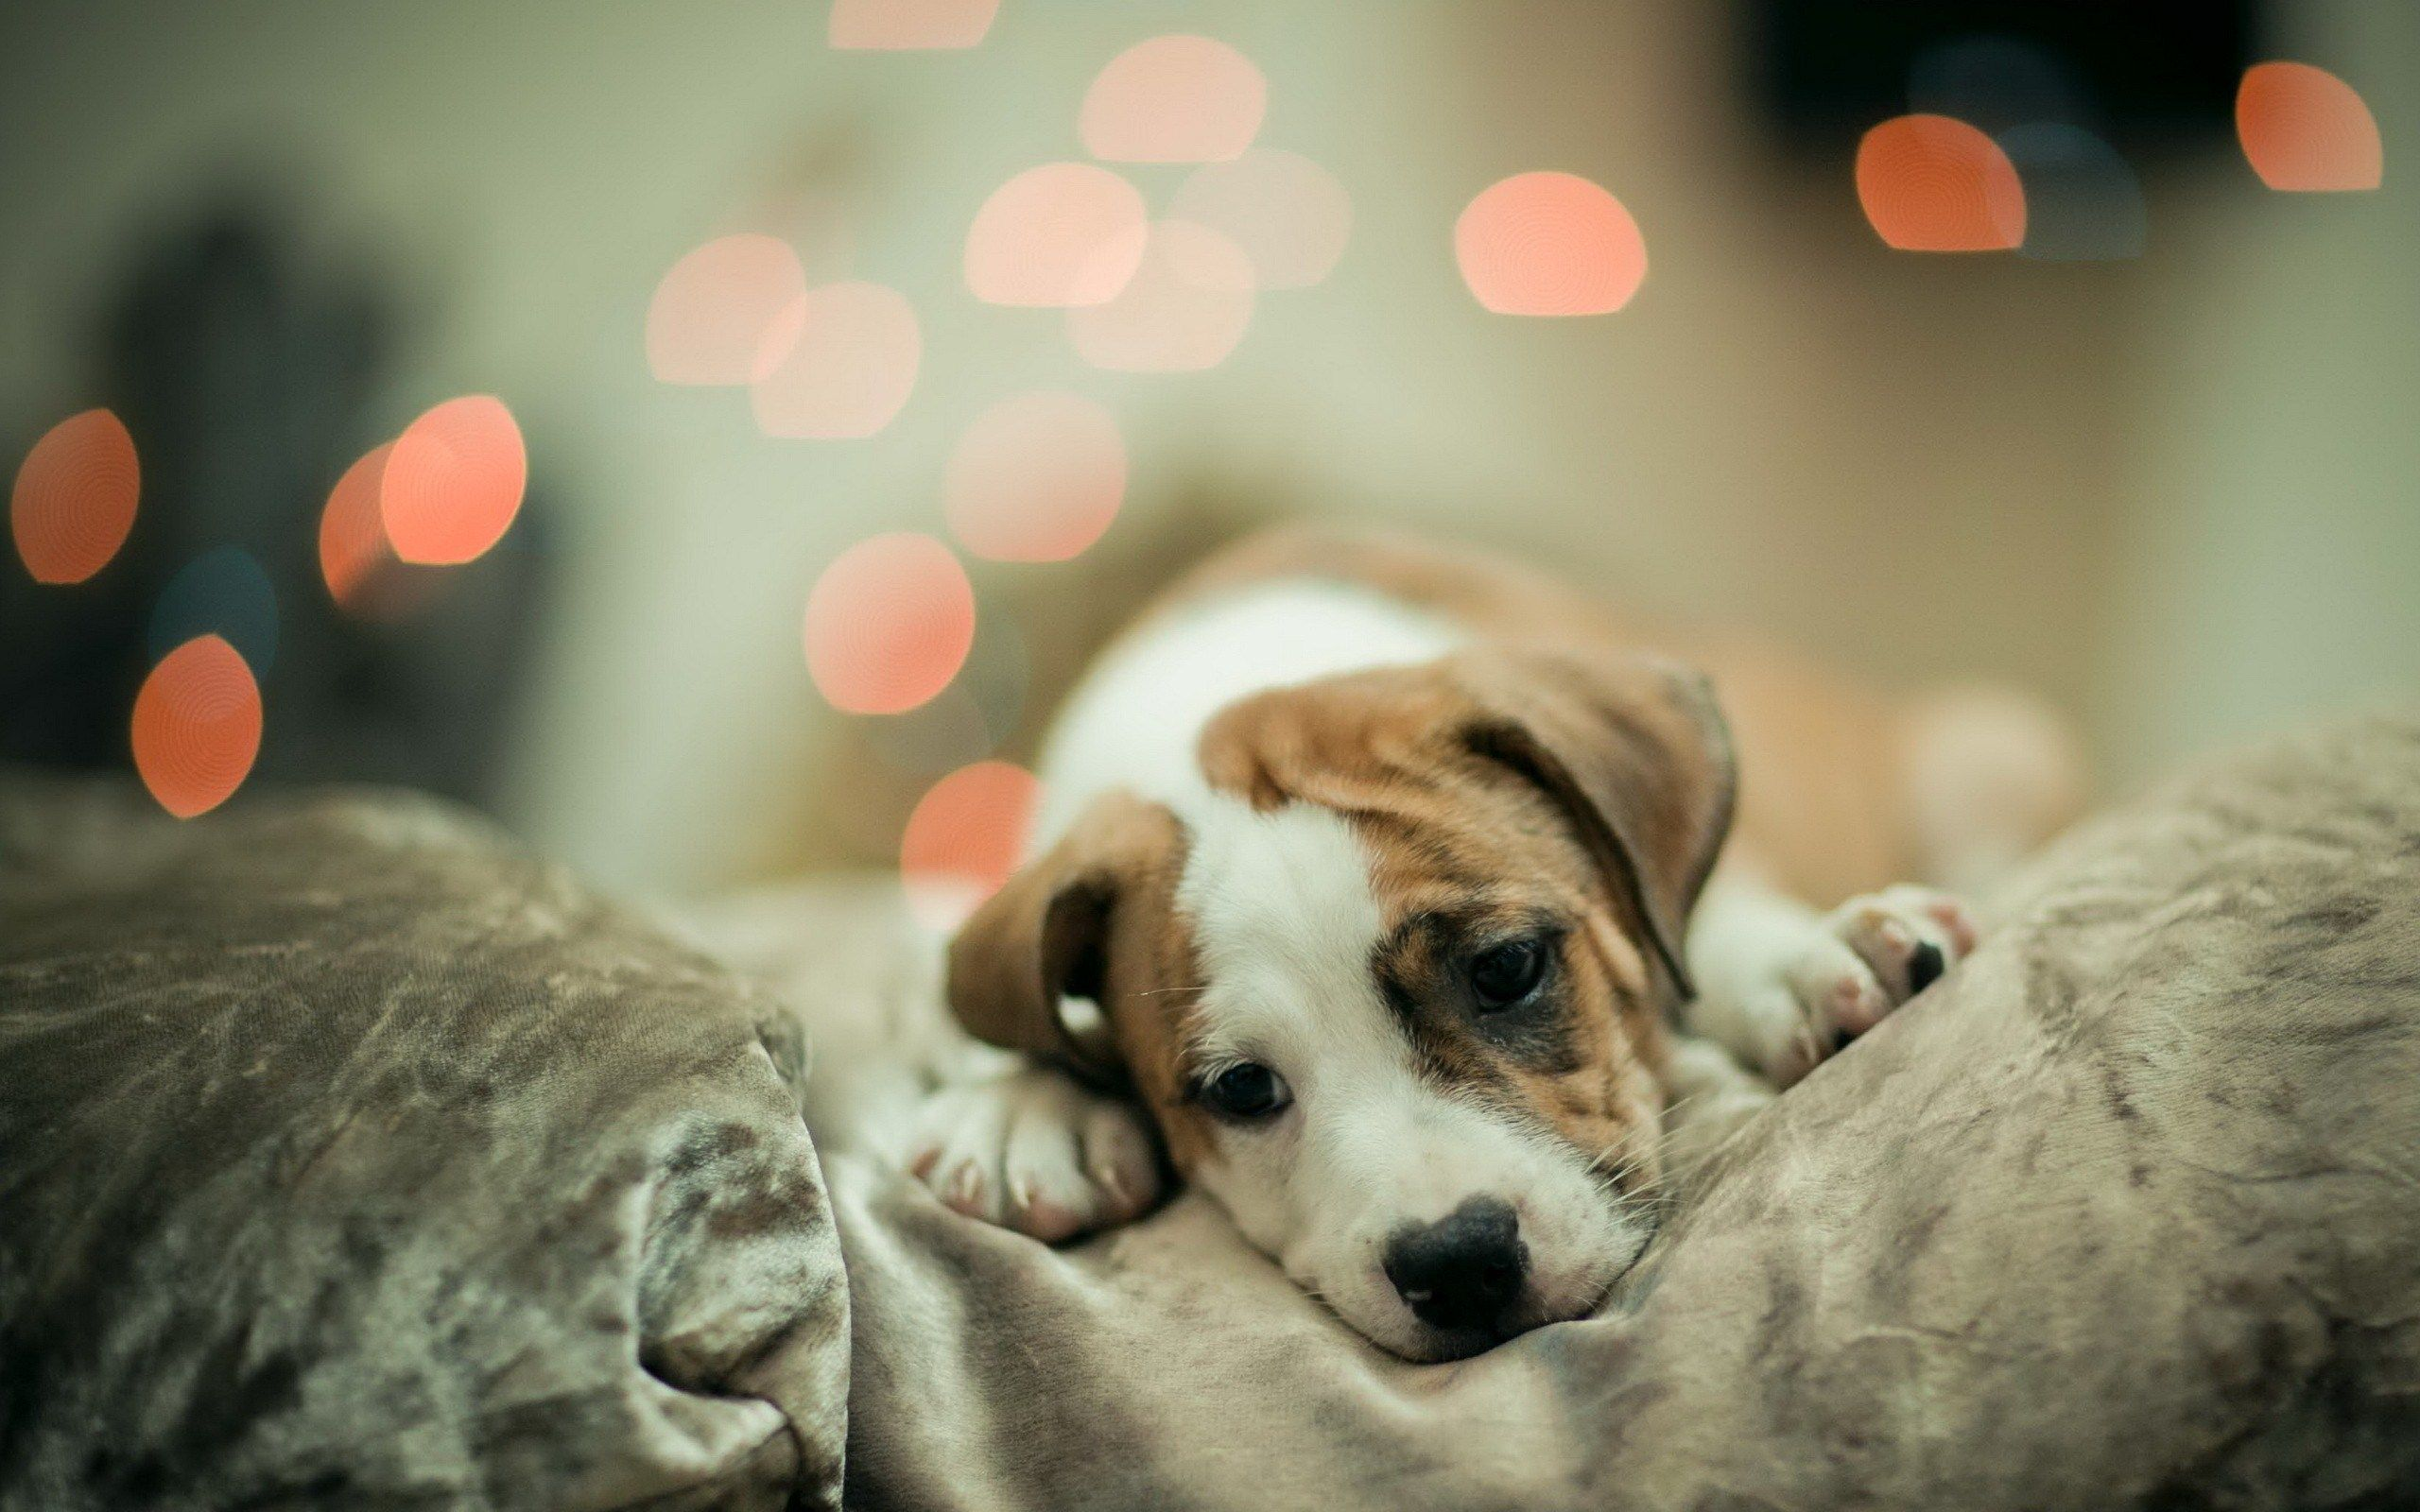 Cute Dogs Wallpapers Some Dogs Like To Sleep In A Cute Dog